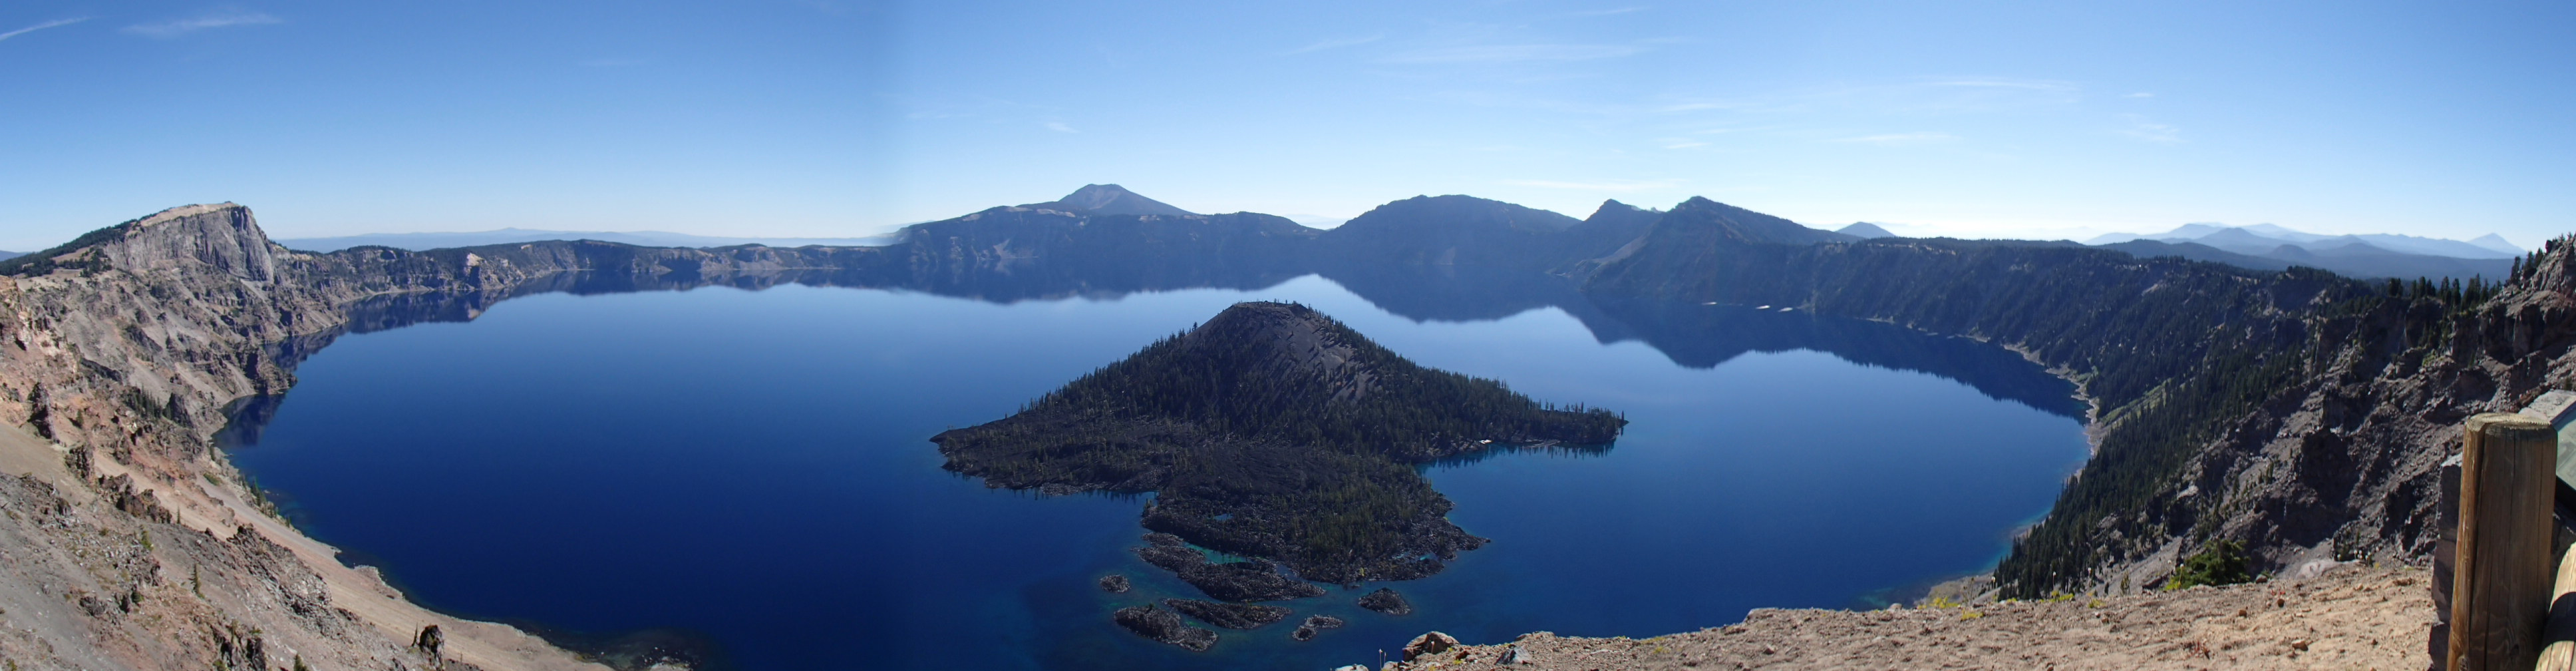 Crater Lake och Wizard Island